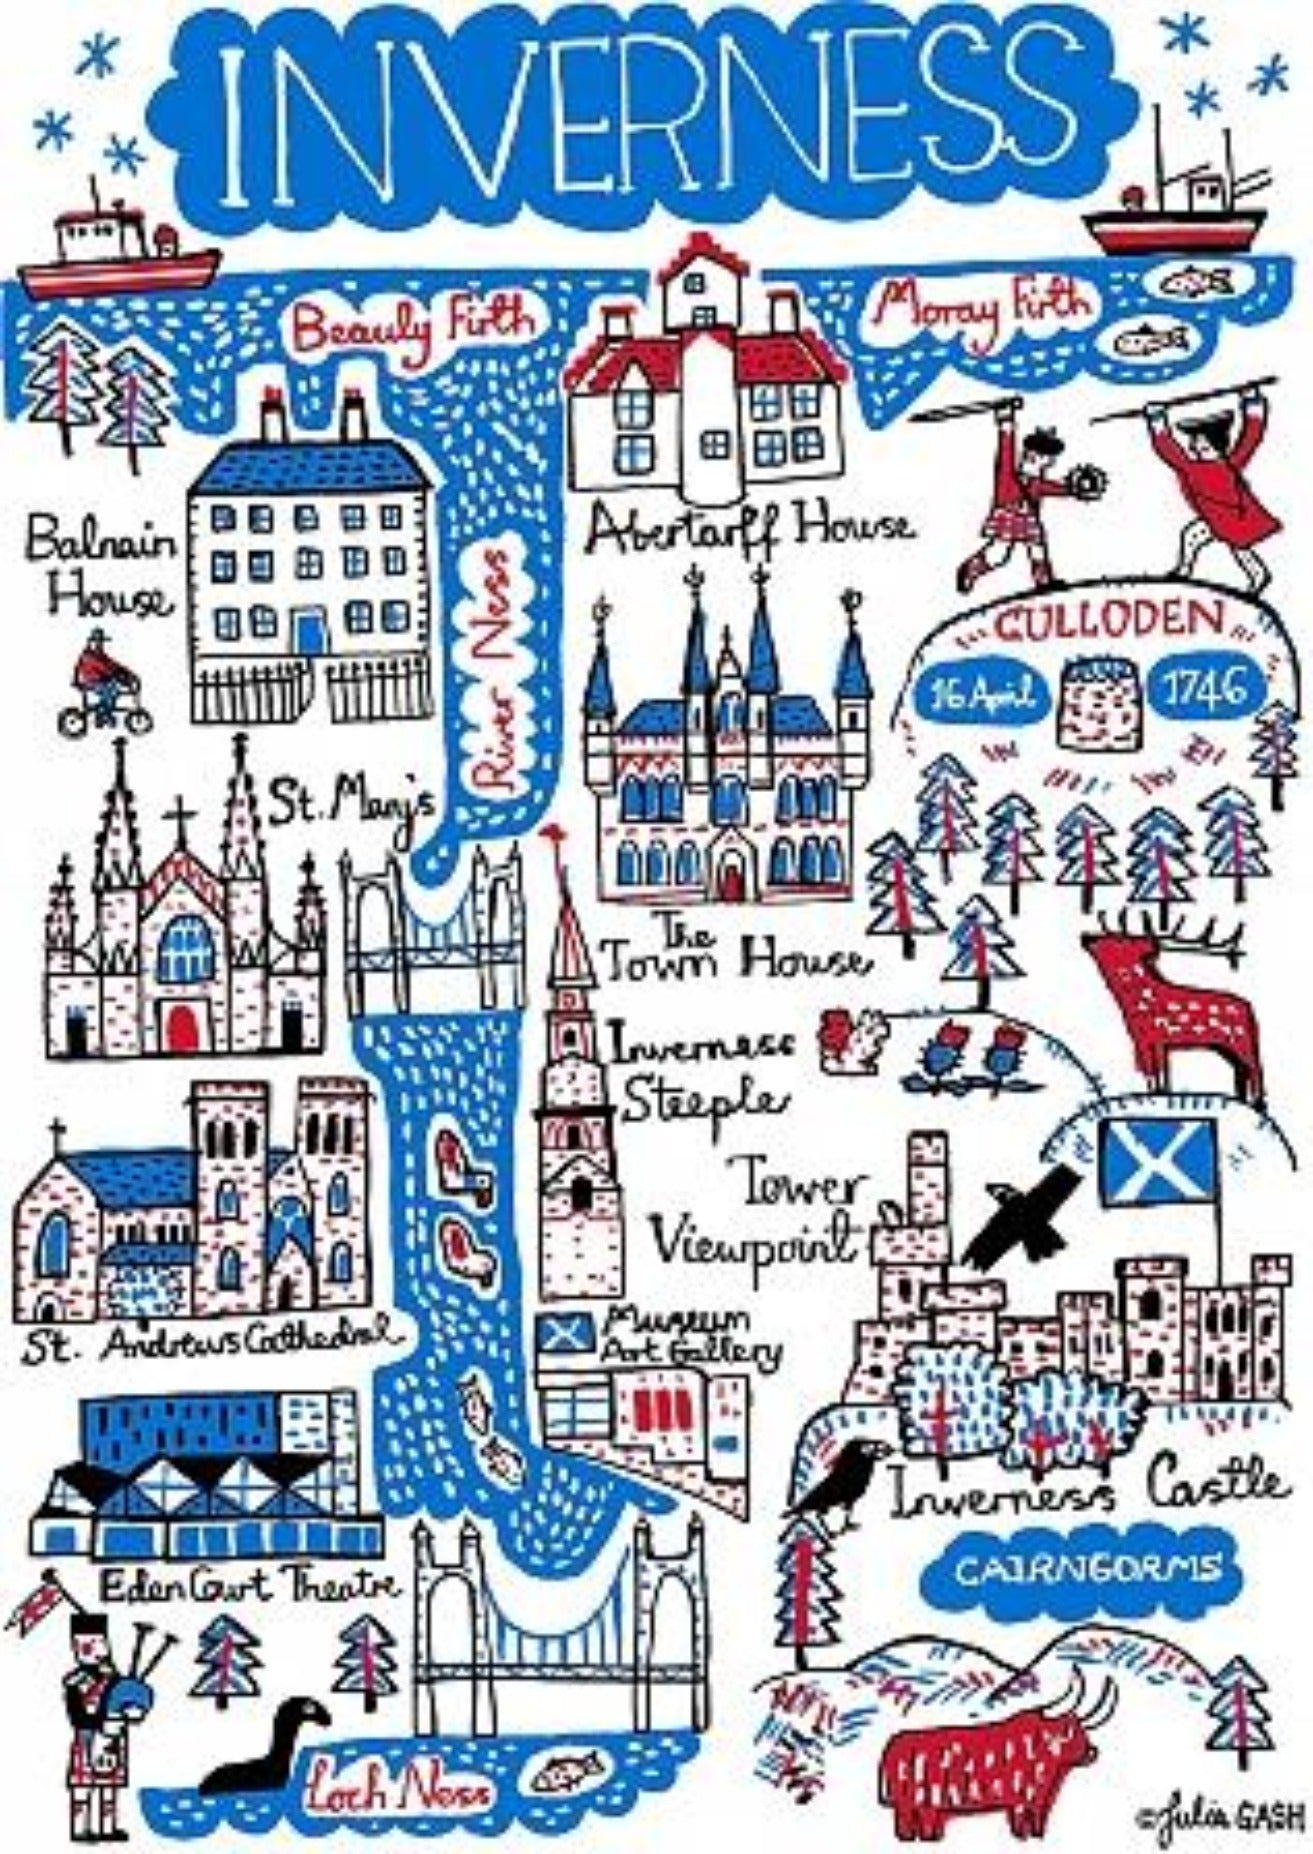 Inverness Art Print by British Travel Artist Julia Gash - Julia Gash